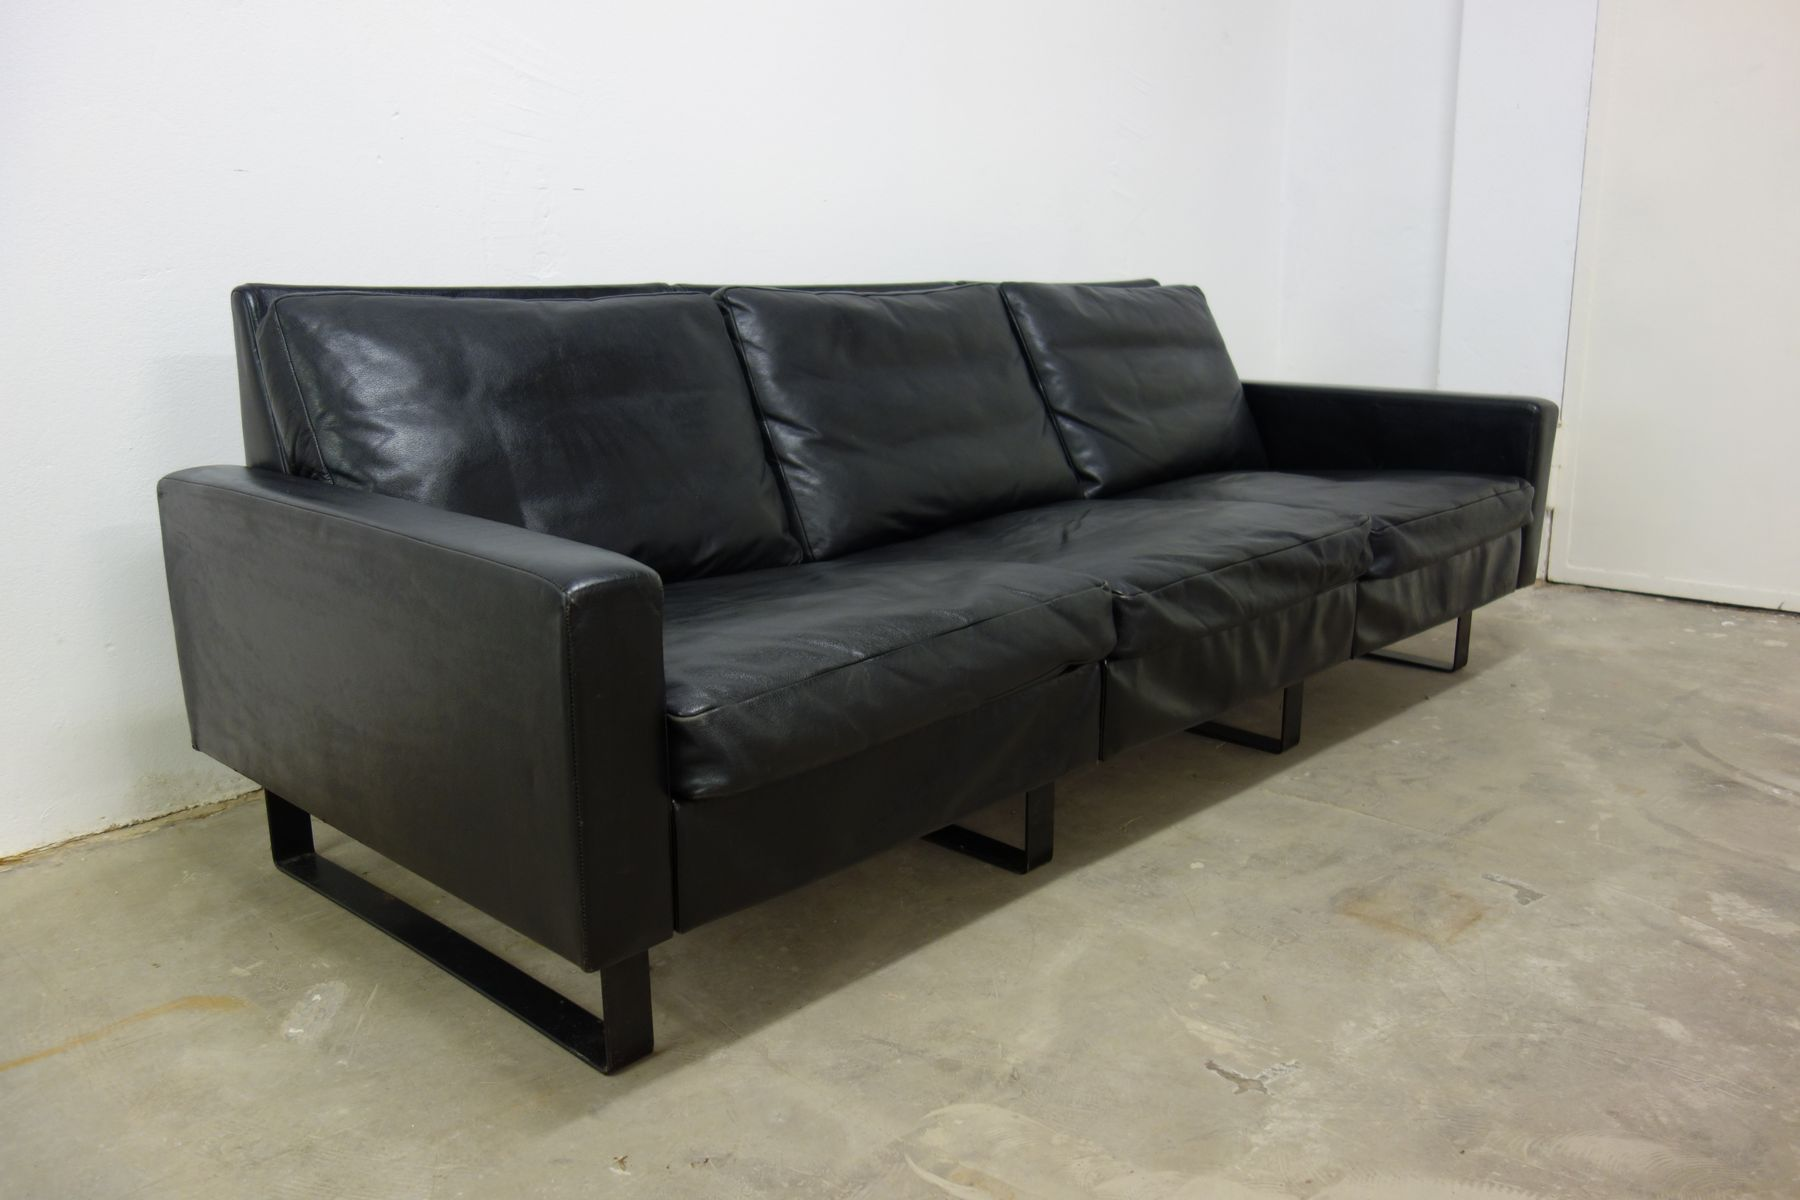 conseta sofa by f w m ller for cor 1960s for sale at pamono. Black Bedroom Furniture Sets. Home Design Ideas